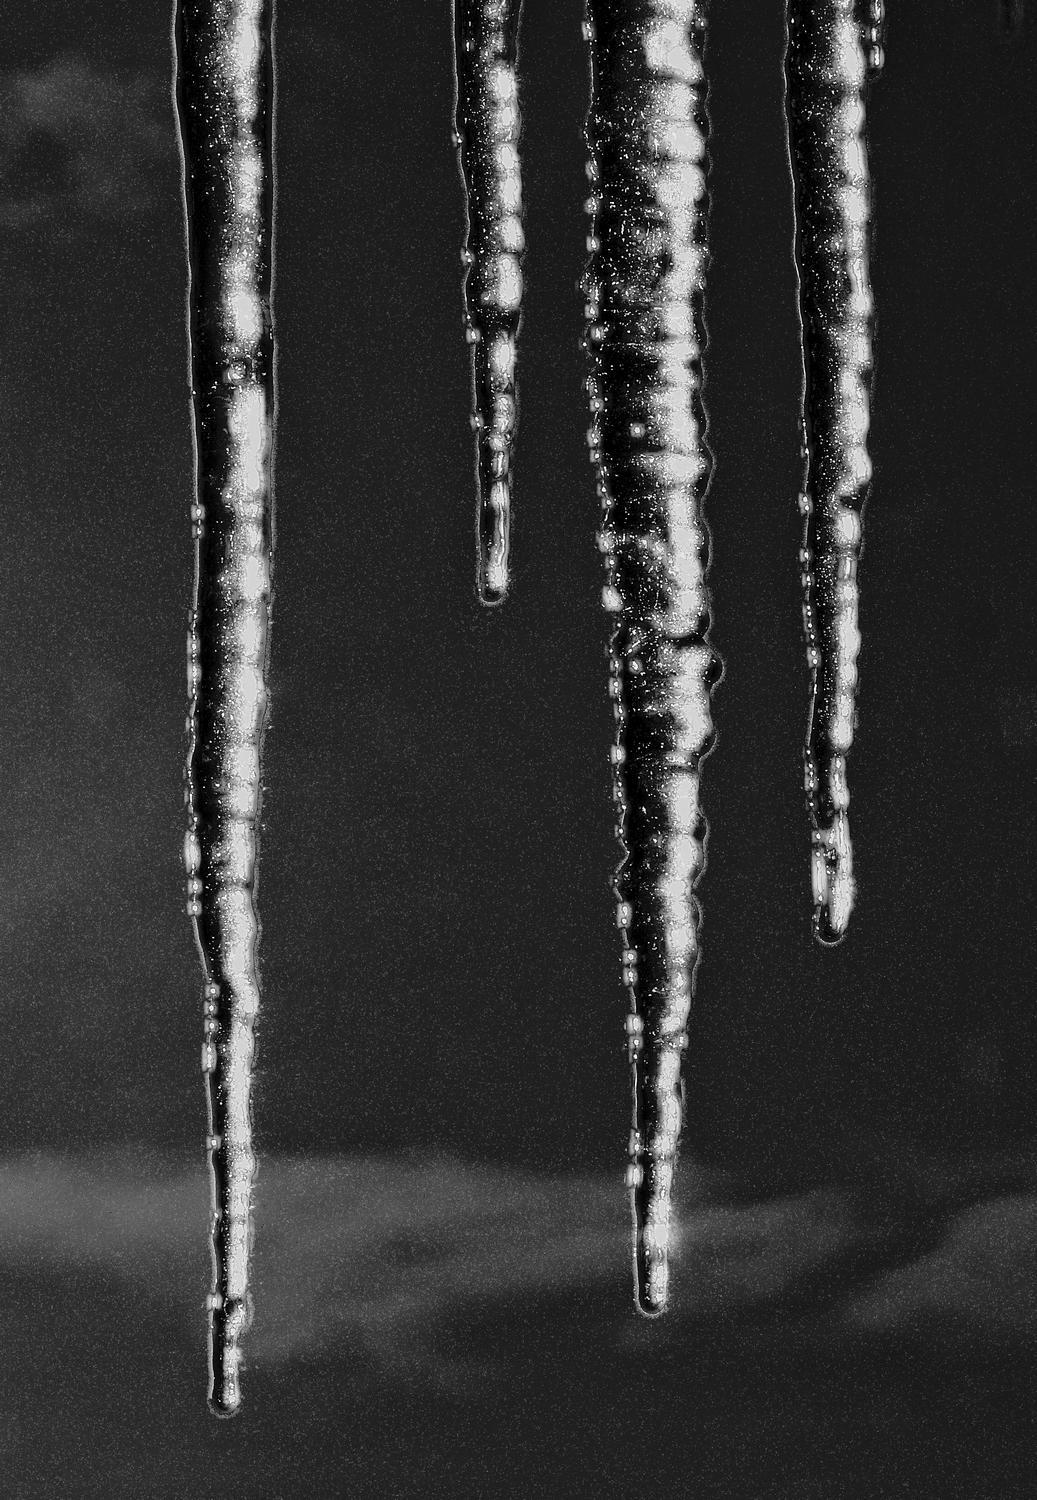 -  Panasonic DMC-FZ18 - Black icicles in the manner of a mezzotint. - - art  - photography - by Tony Karp